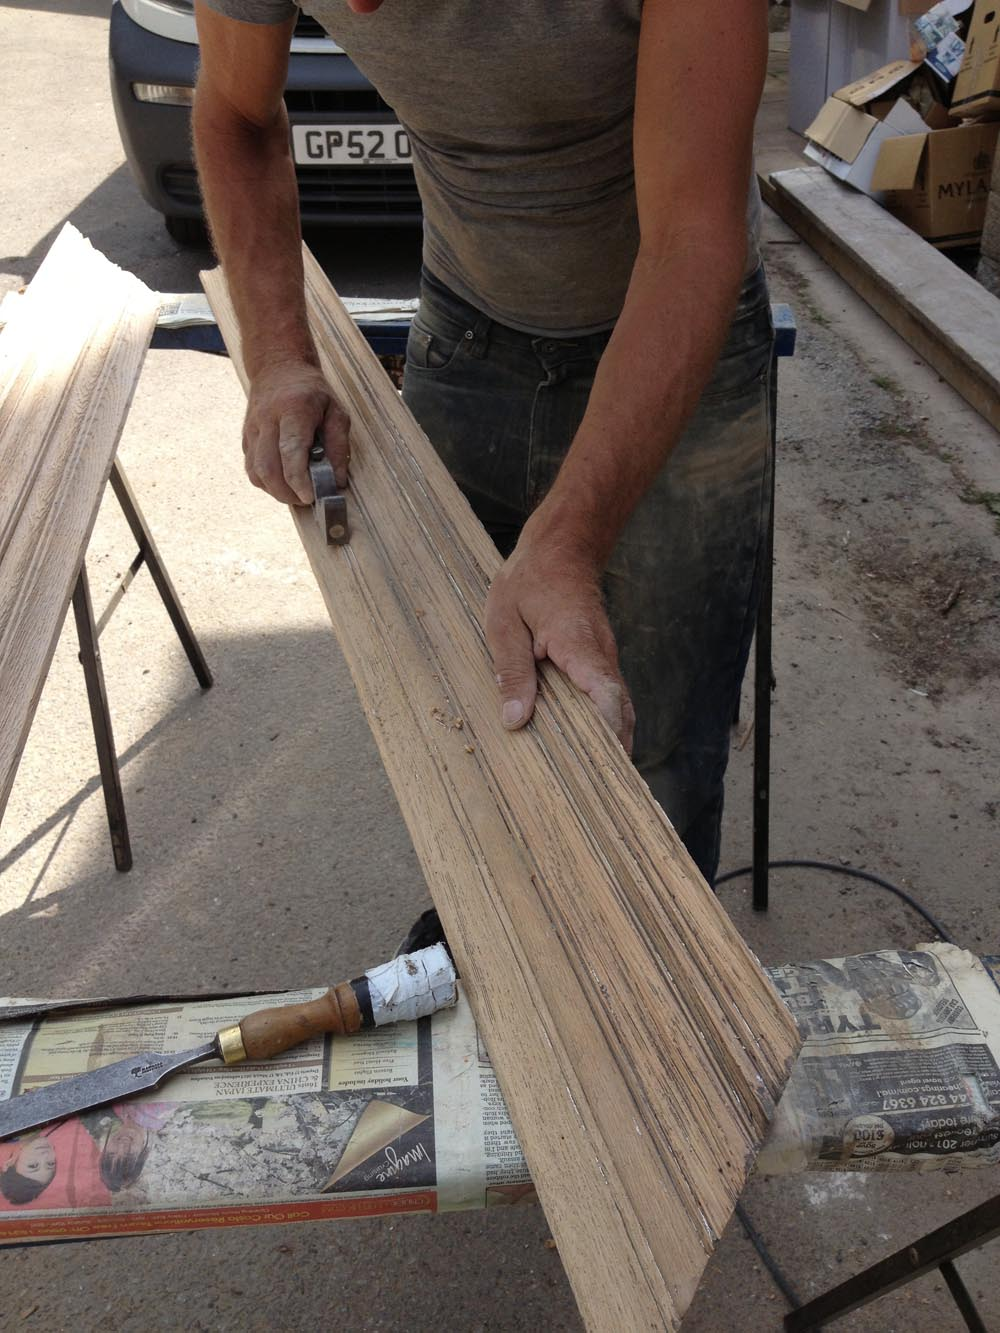 using moulding planes to restore the profile of the original oak cornice